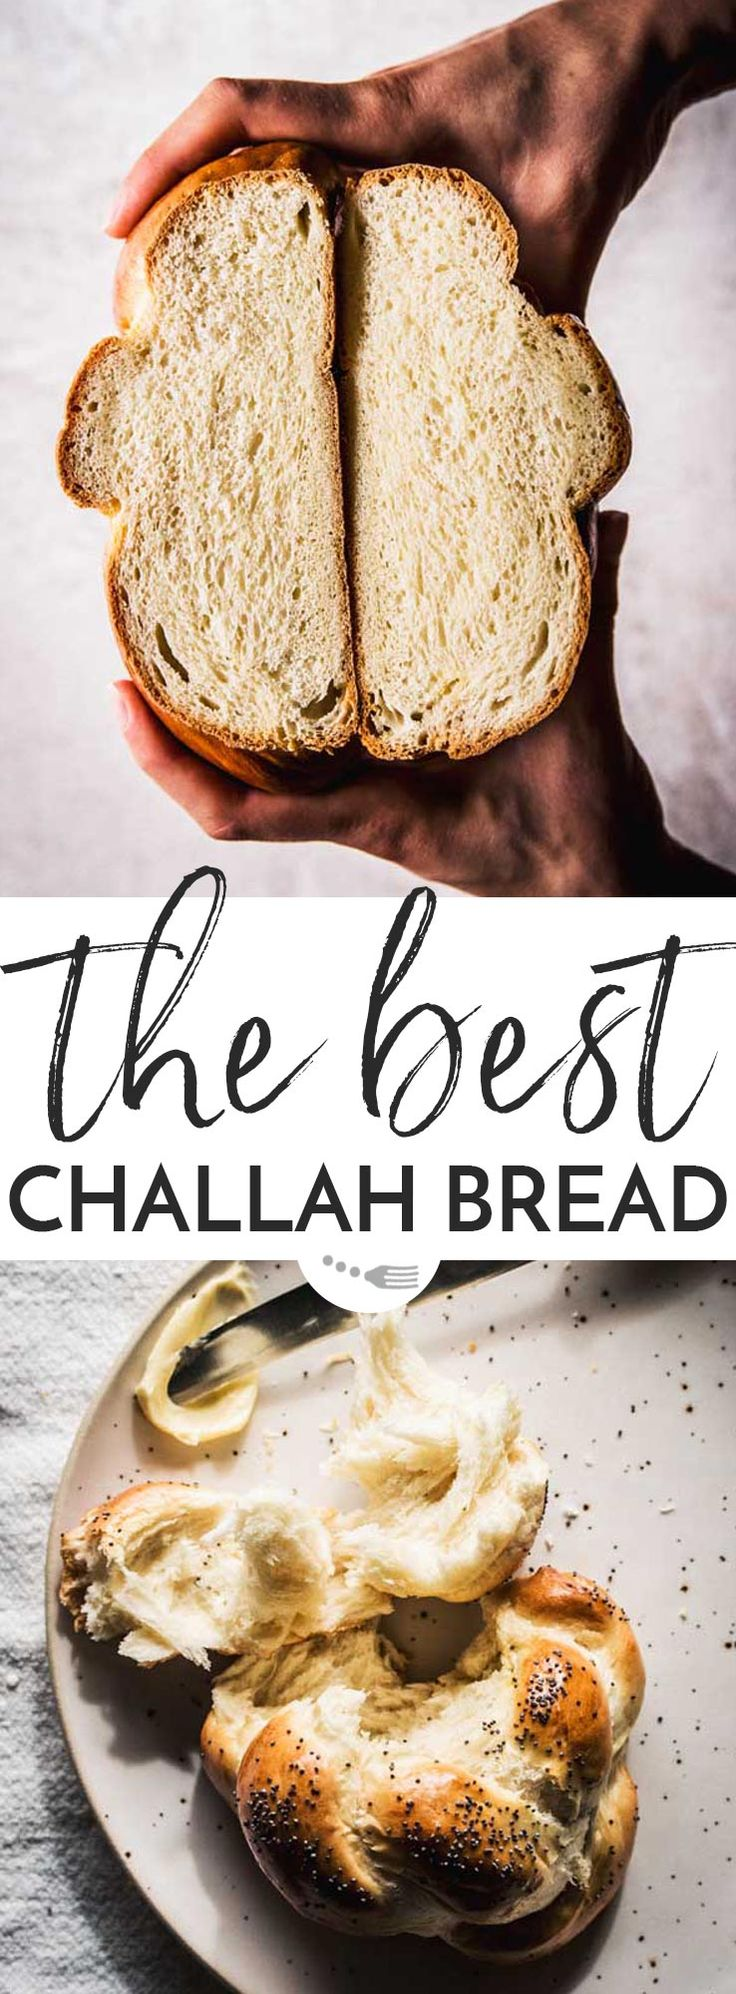 The BEST homemade challah bread! It takes time, but it's so worth it. The ingredient list is pretty short and simple, and once you get the hang of the technique it's easy to put together. This is not a traditional Jewish recipe, but an authentic Swiss Zopf. The slightly sweet bread is perfect for breakfast and brunch, you can shape it into one big braided loaf or into small rolls. | #recipe #bread #baking #breadrecipe #brunch #easter